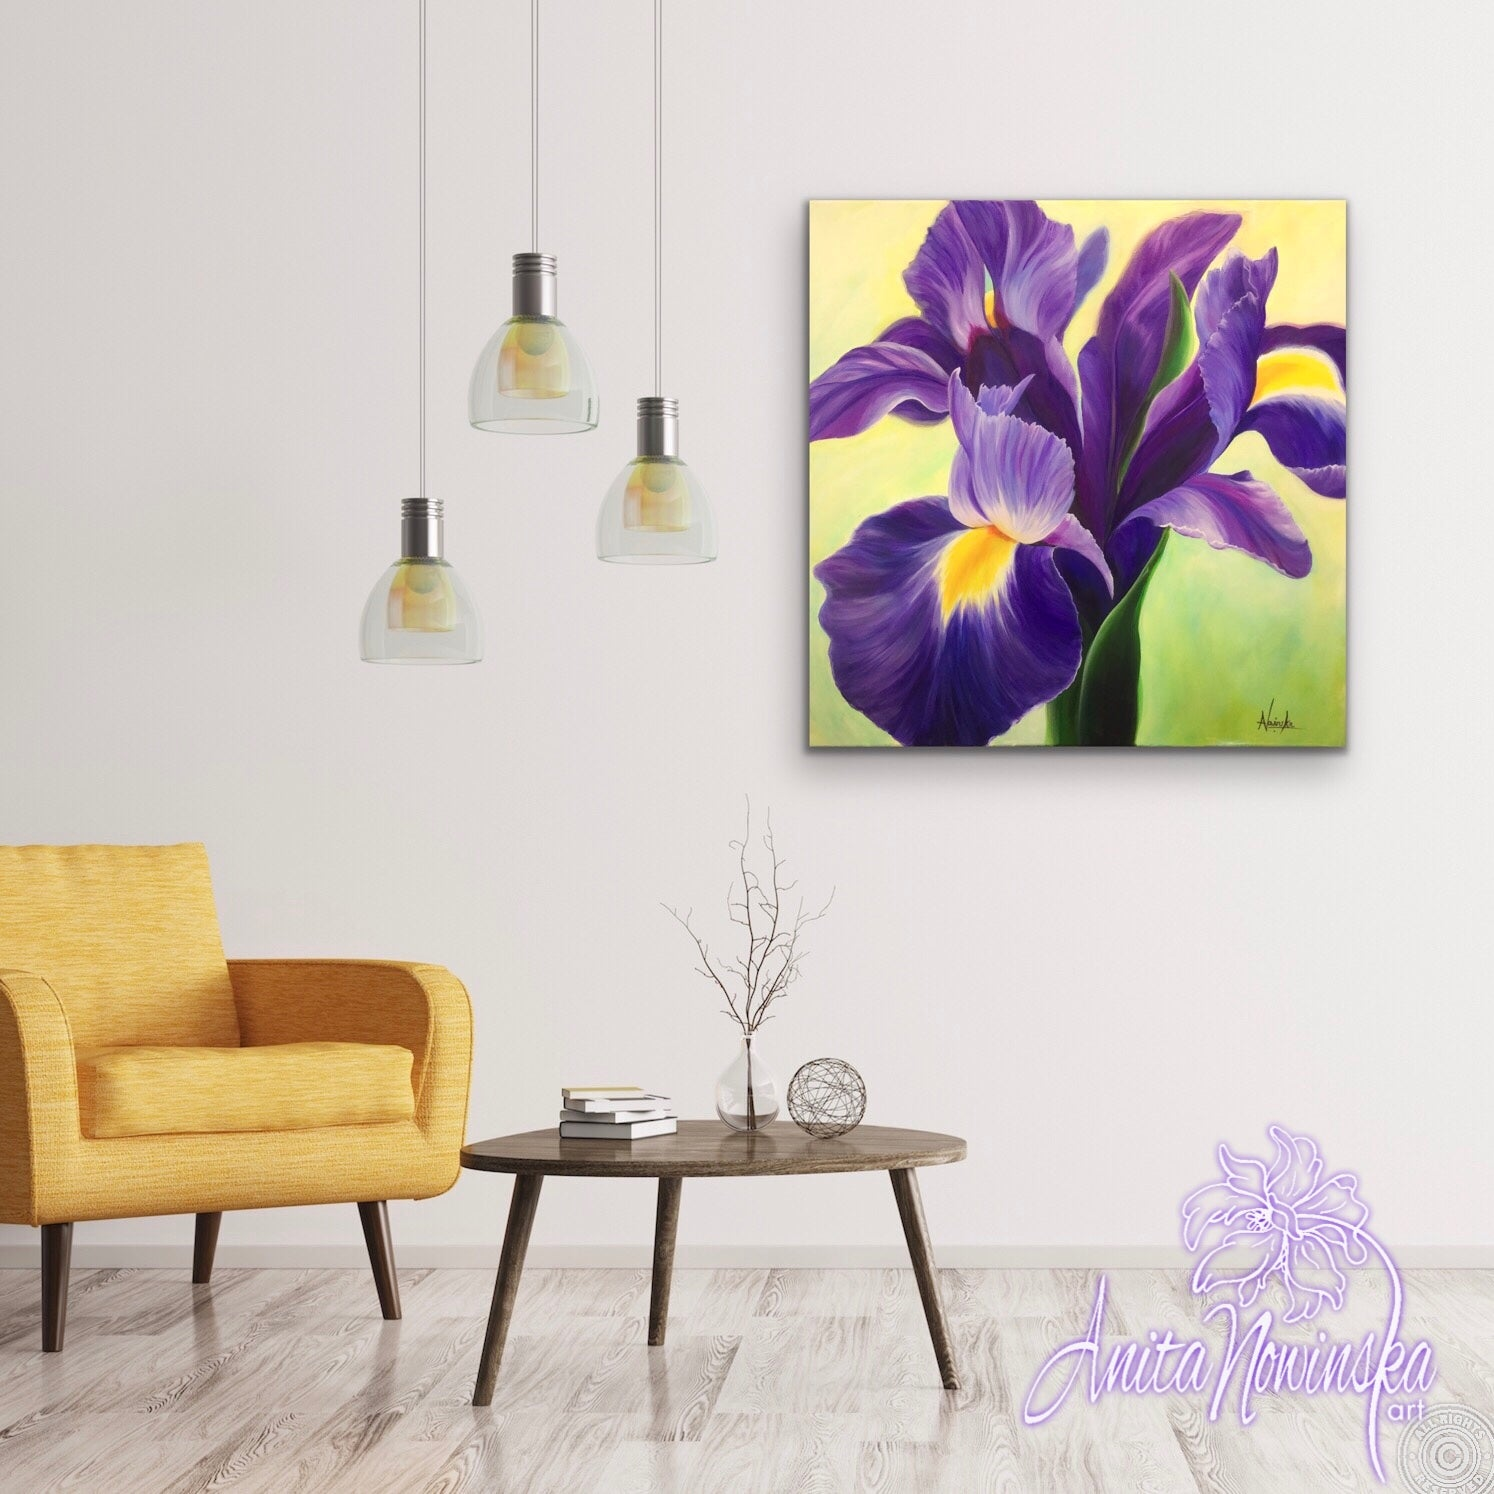 A Deep purple iris with flash of yellow in an oil on canvas flower painting by Anita.